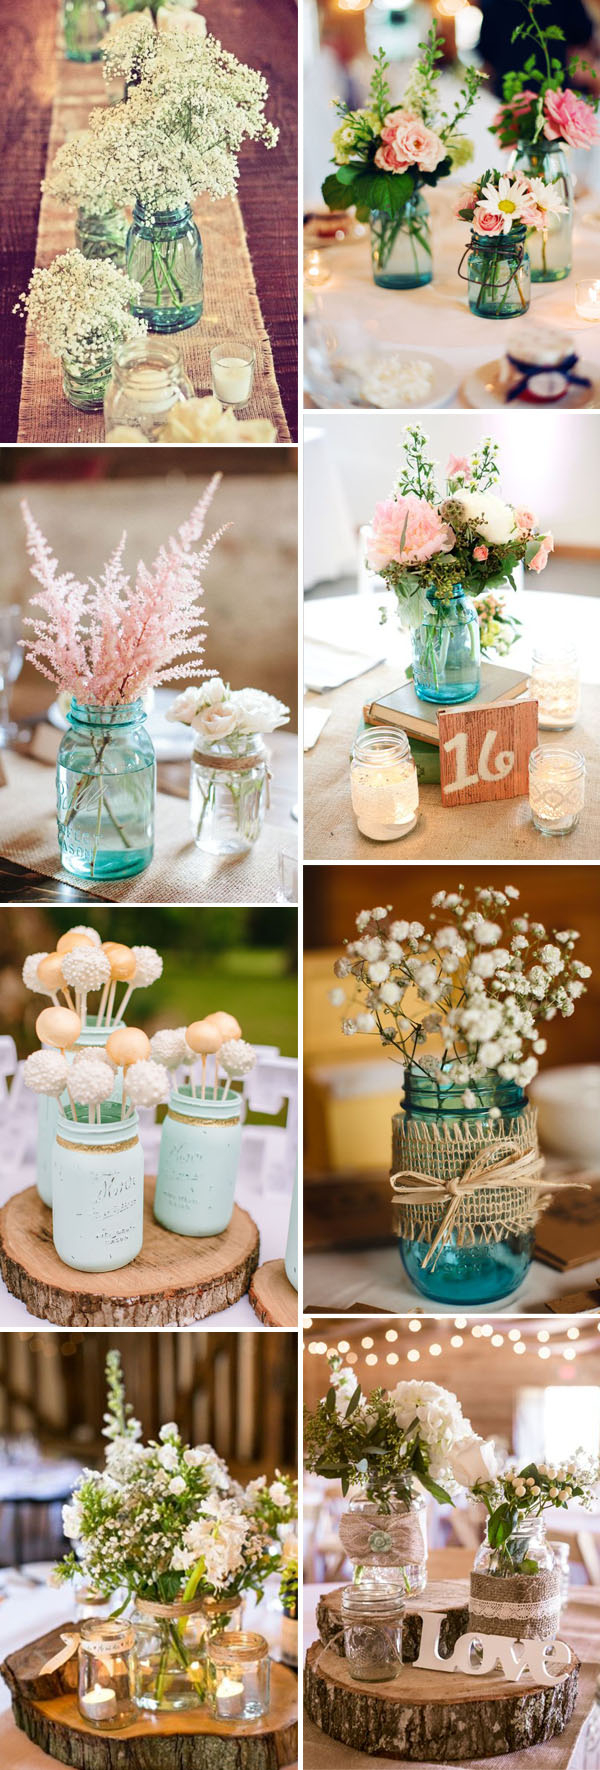 Cheap Rustic Wedding Decor 50 Best Rustic Wedding Ideas With Mason Jars Stylish Wedd Blog